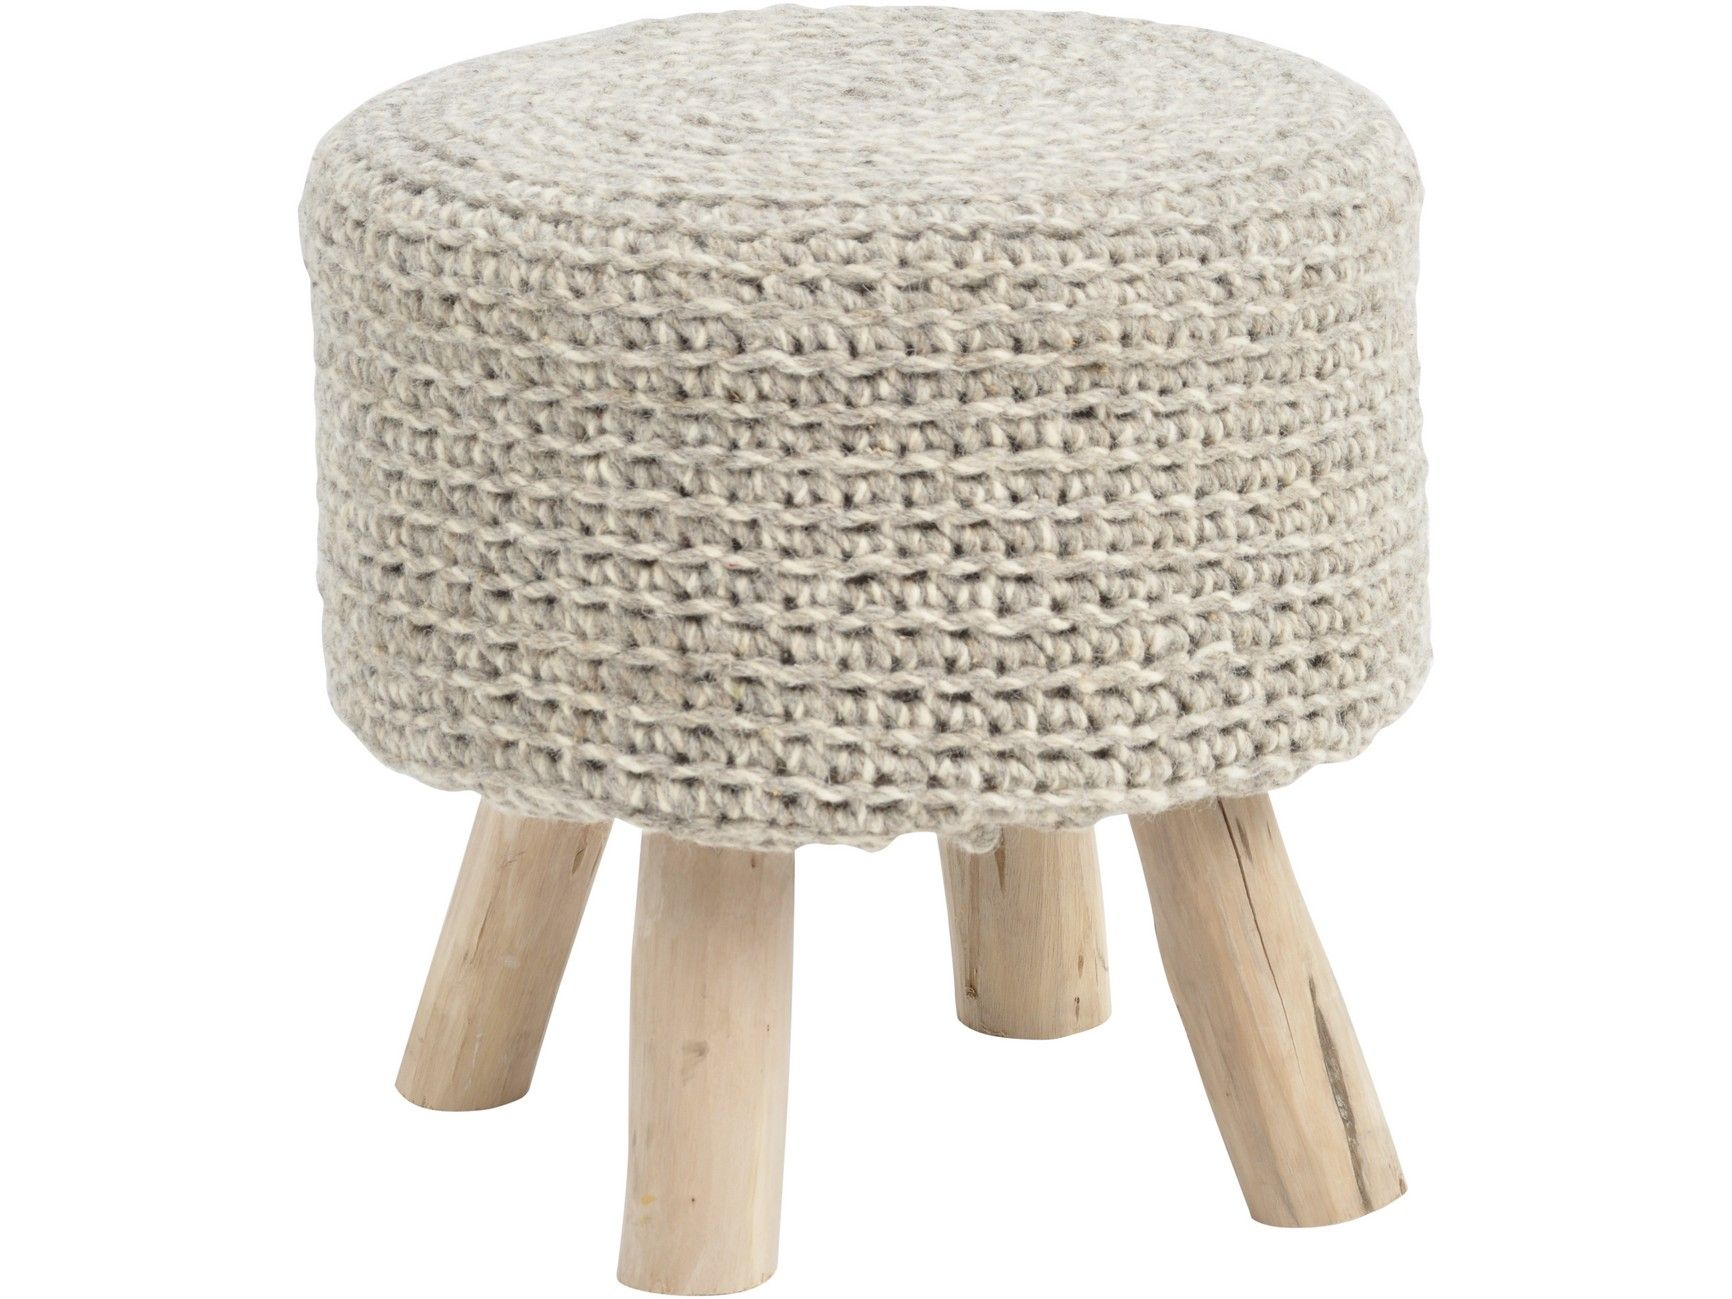 Nomad Knitted Stool Stone Grey